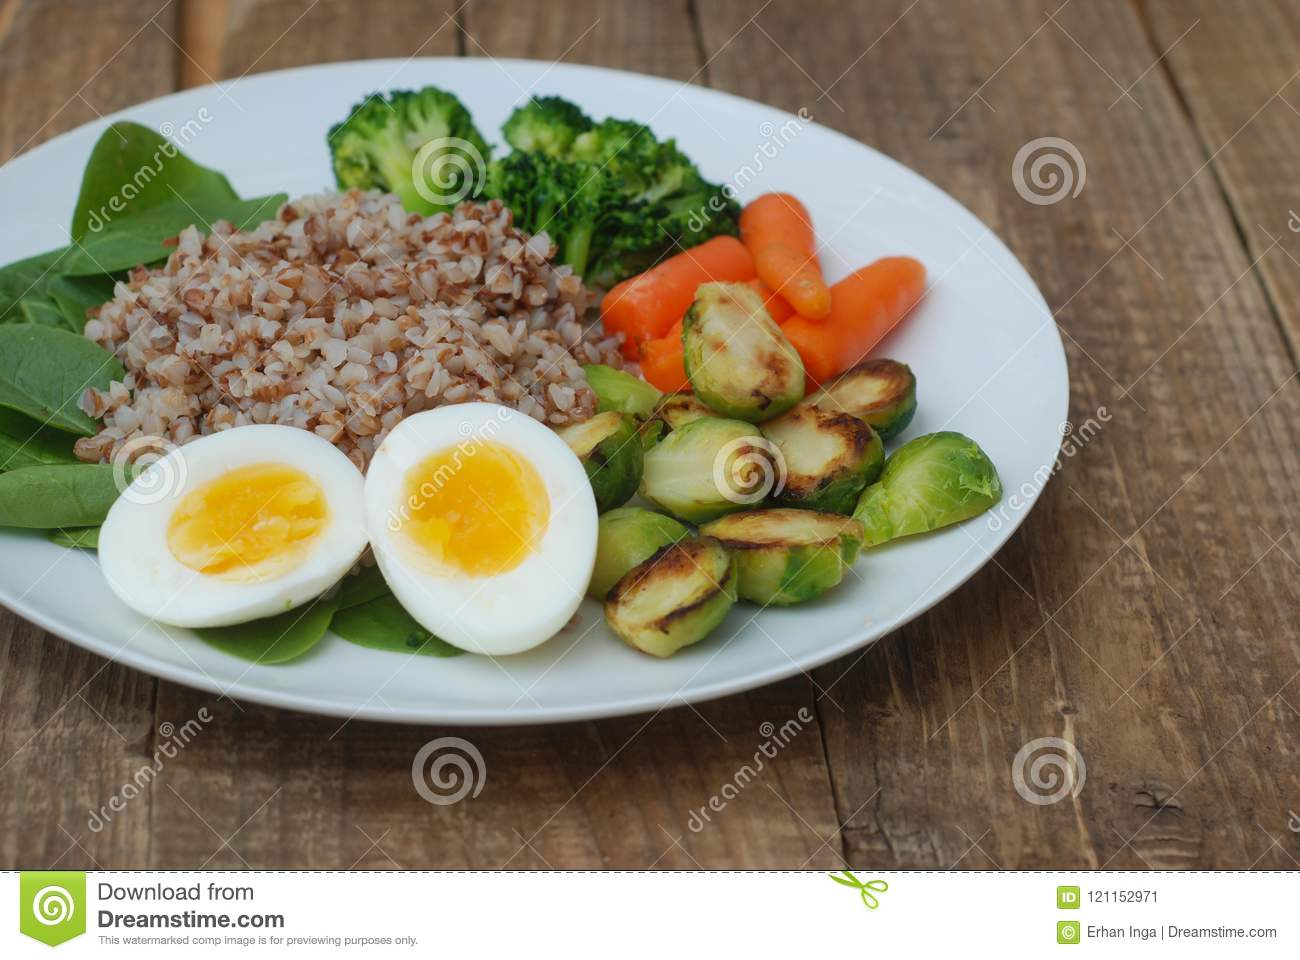 boiled egg and cabbage diet